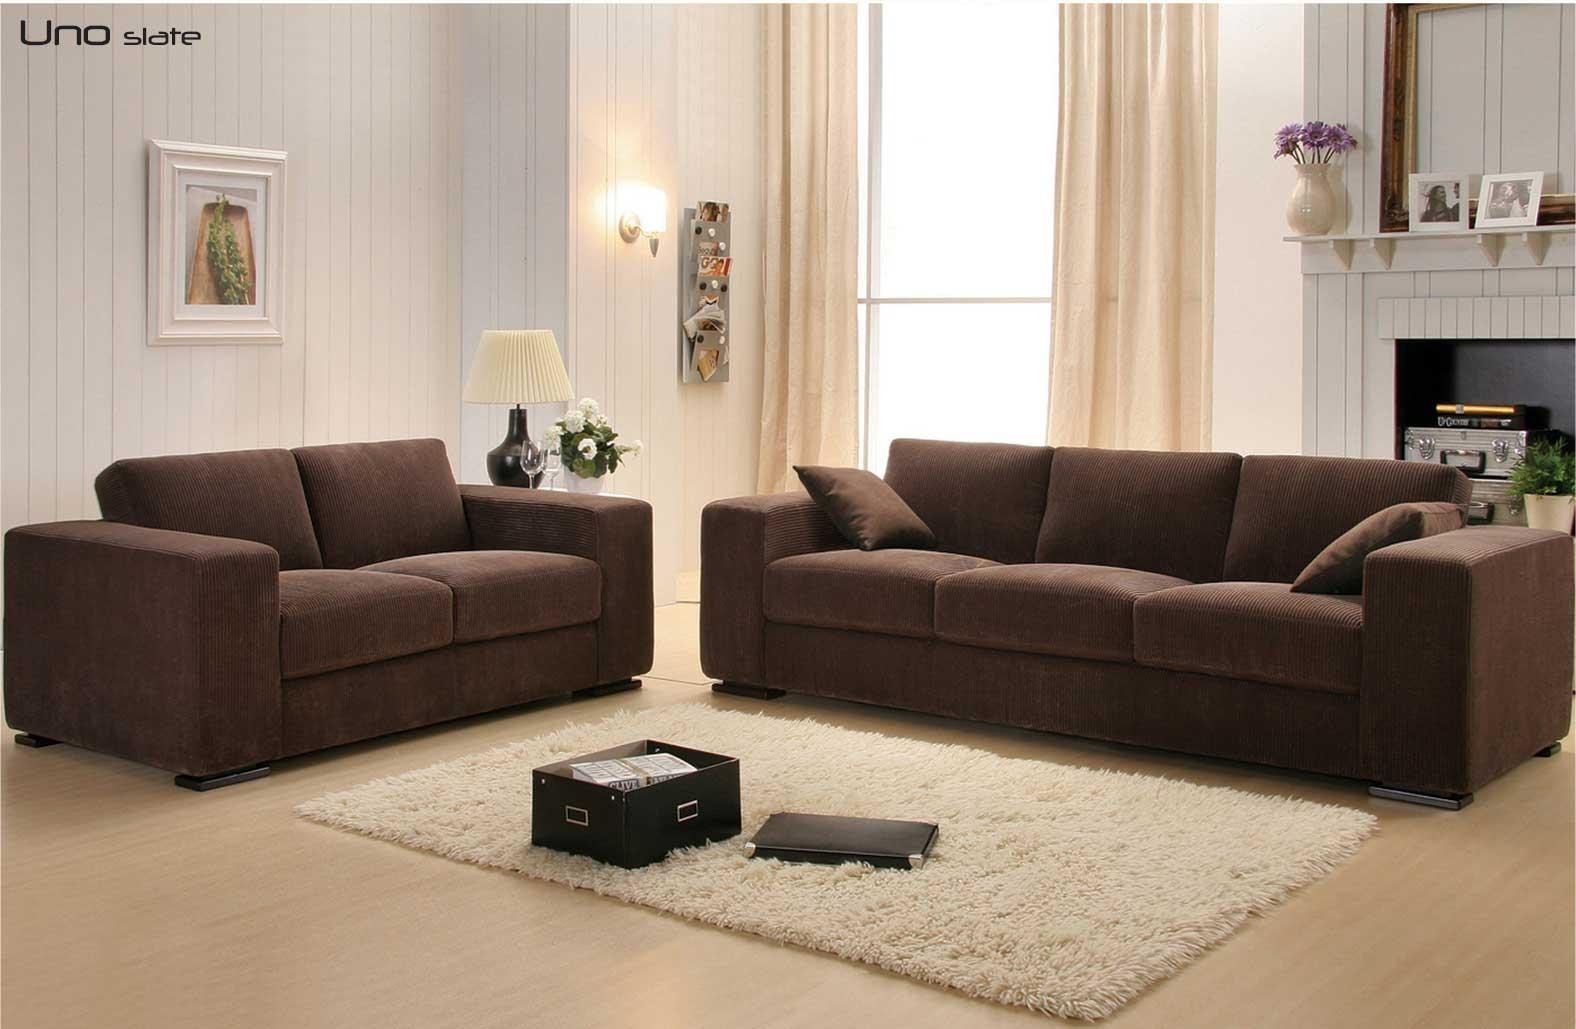 Slate brown corduroy sofa bed sofa beds star modern for Brown corduroy couch